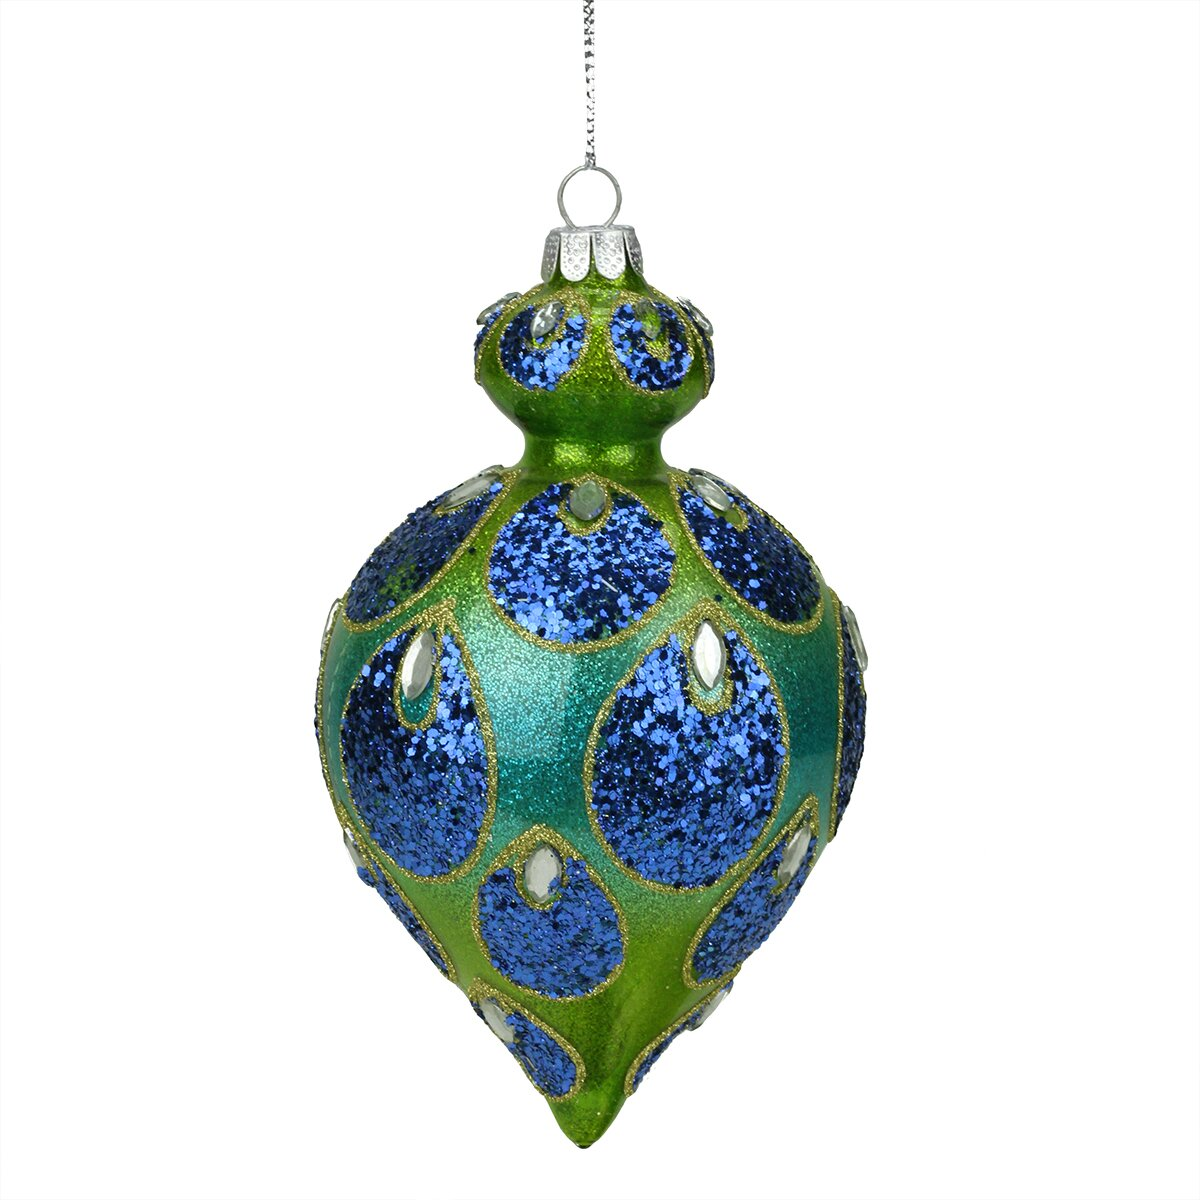 Northlight Regal Peacock Glittered Glass Teardrop Finial Christmas Ornament